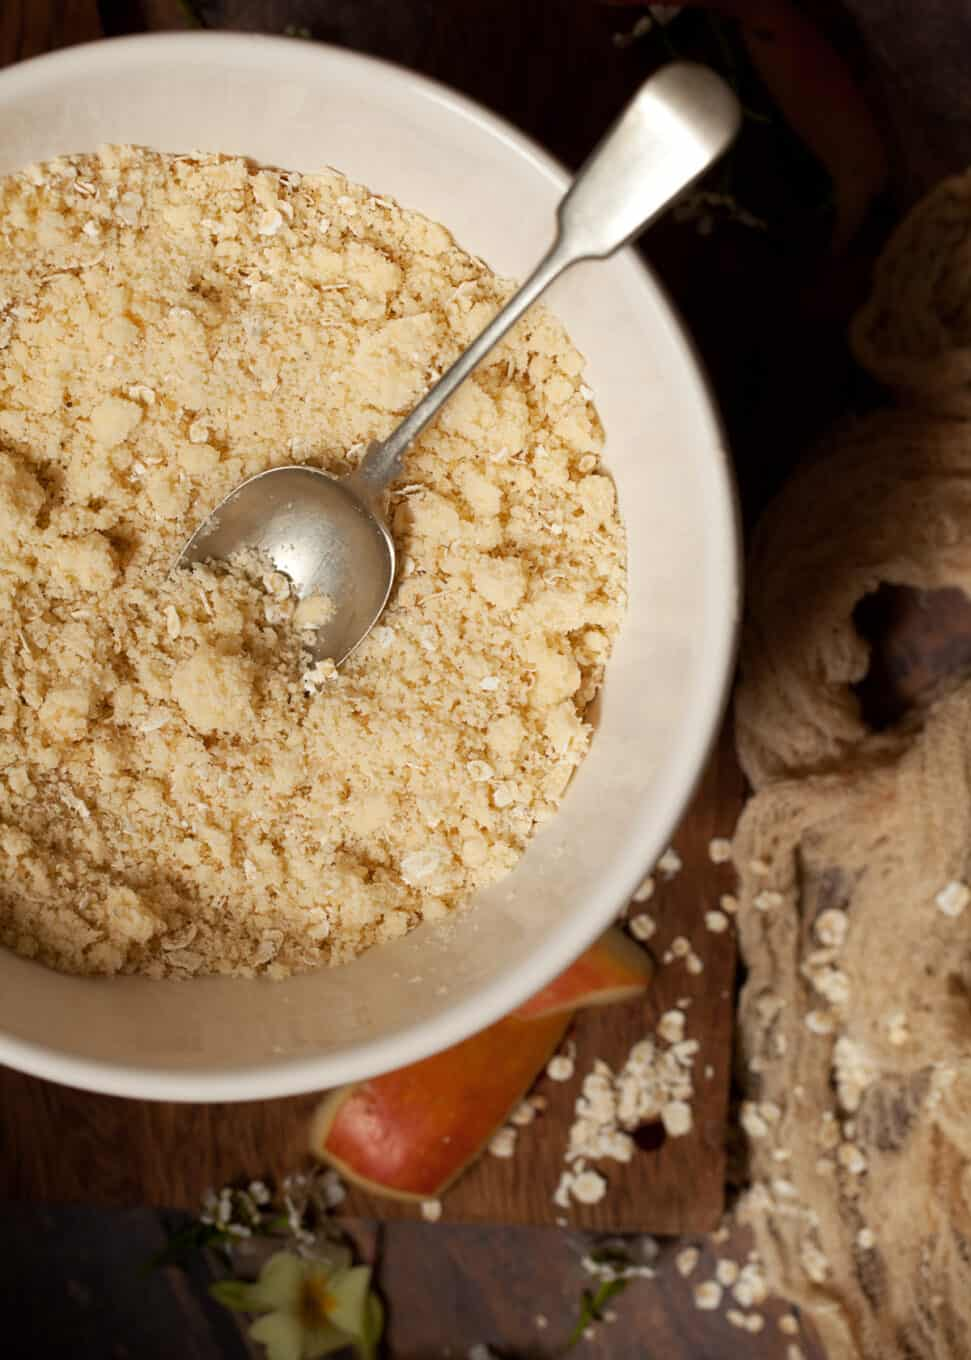 Crumble topping with oats in a bowl